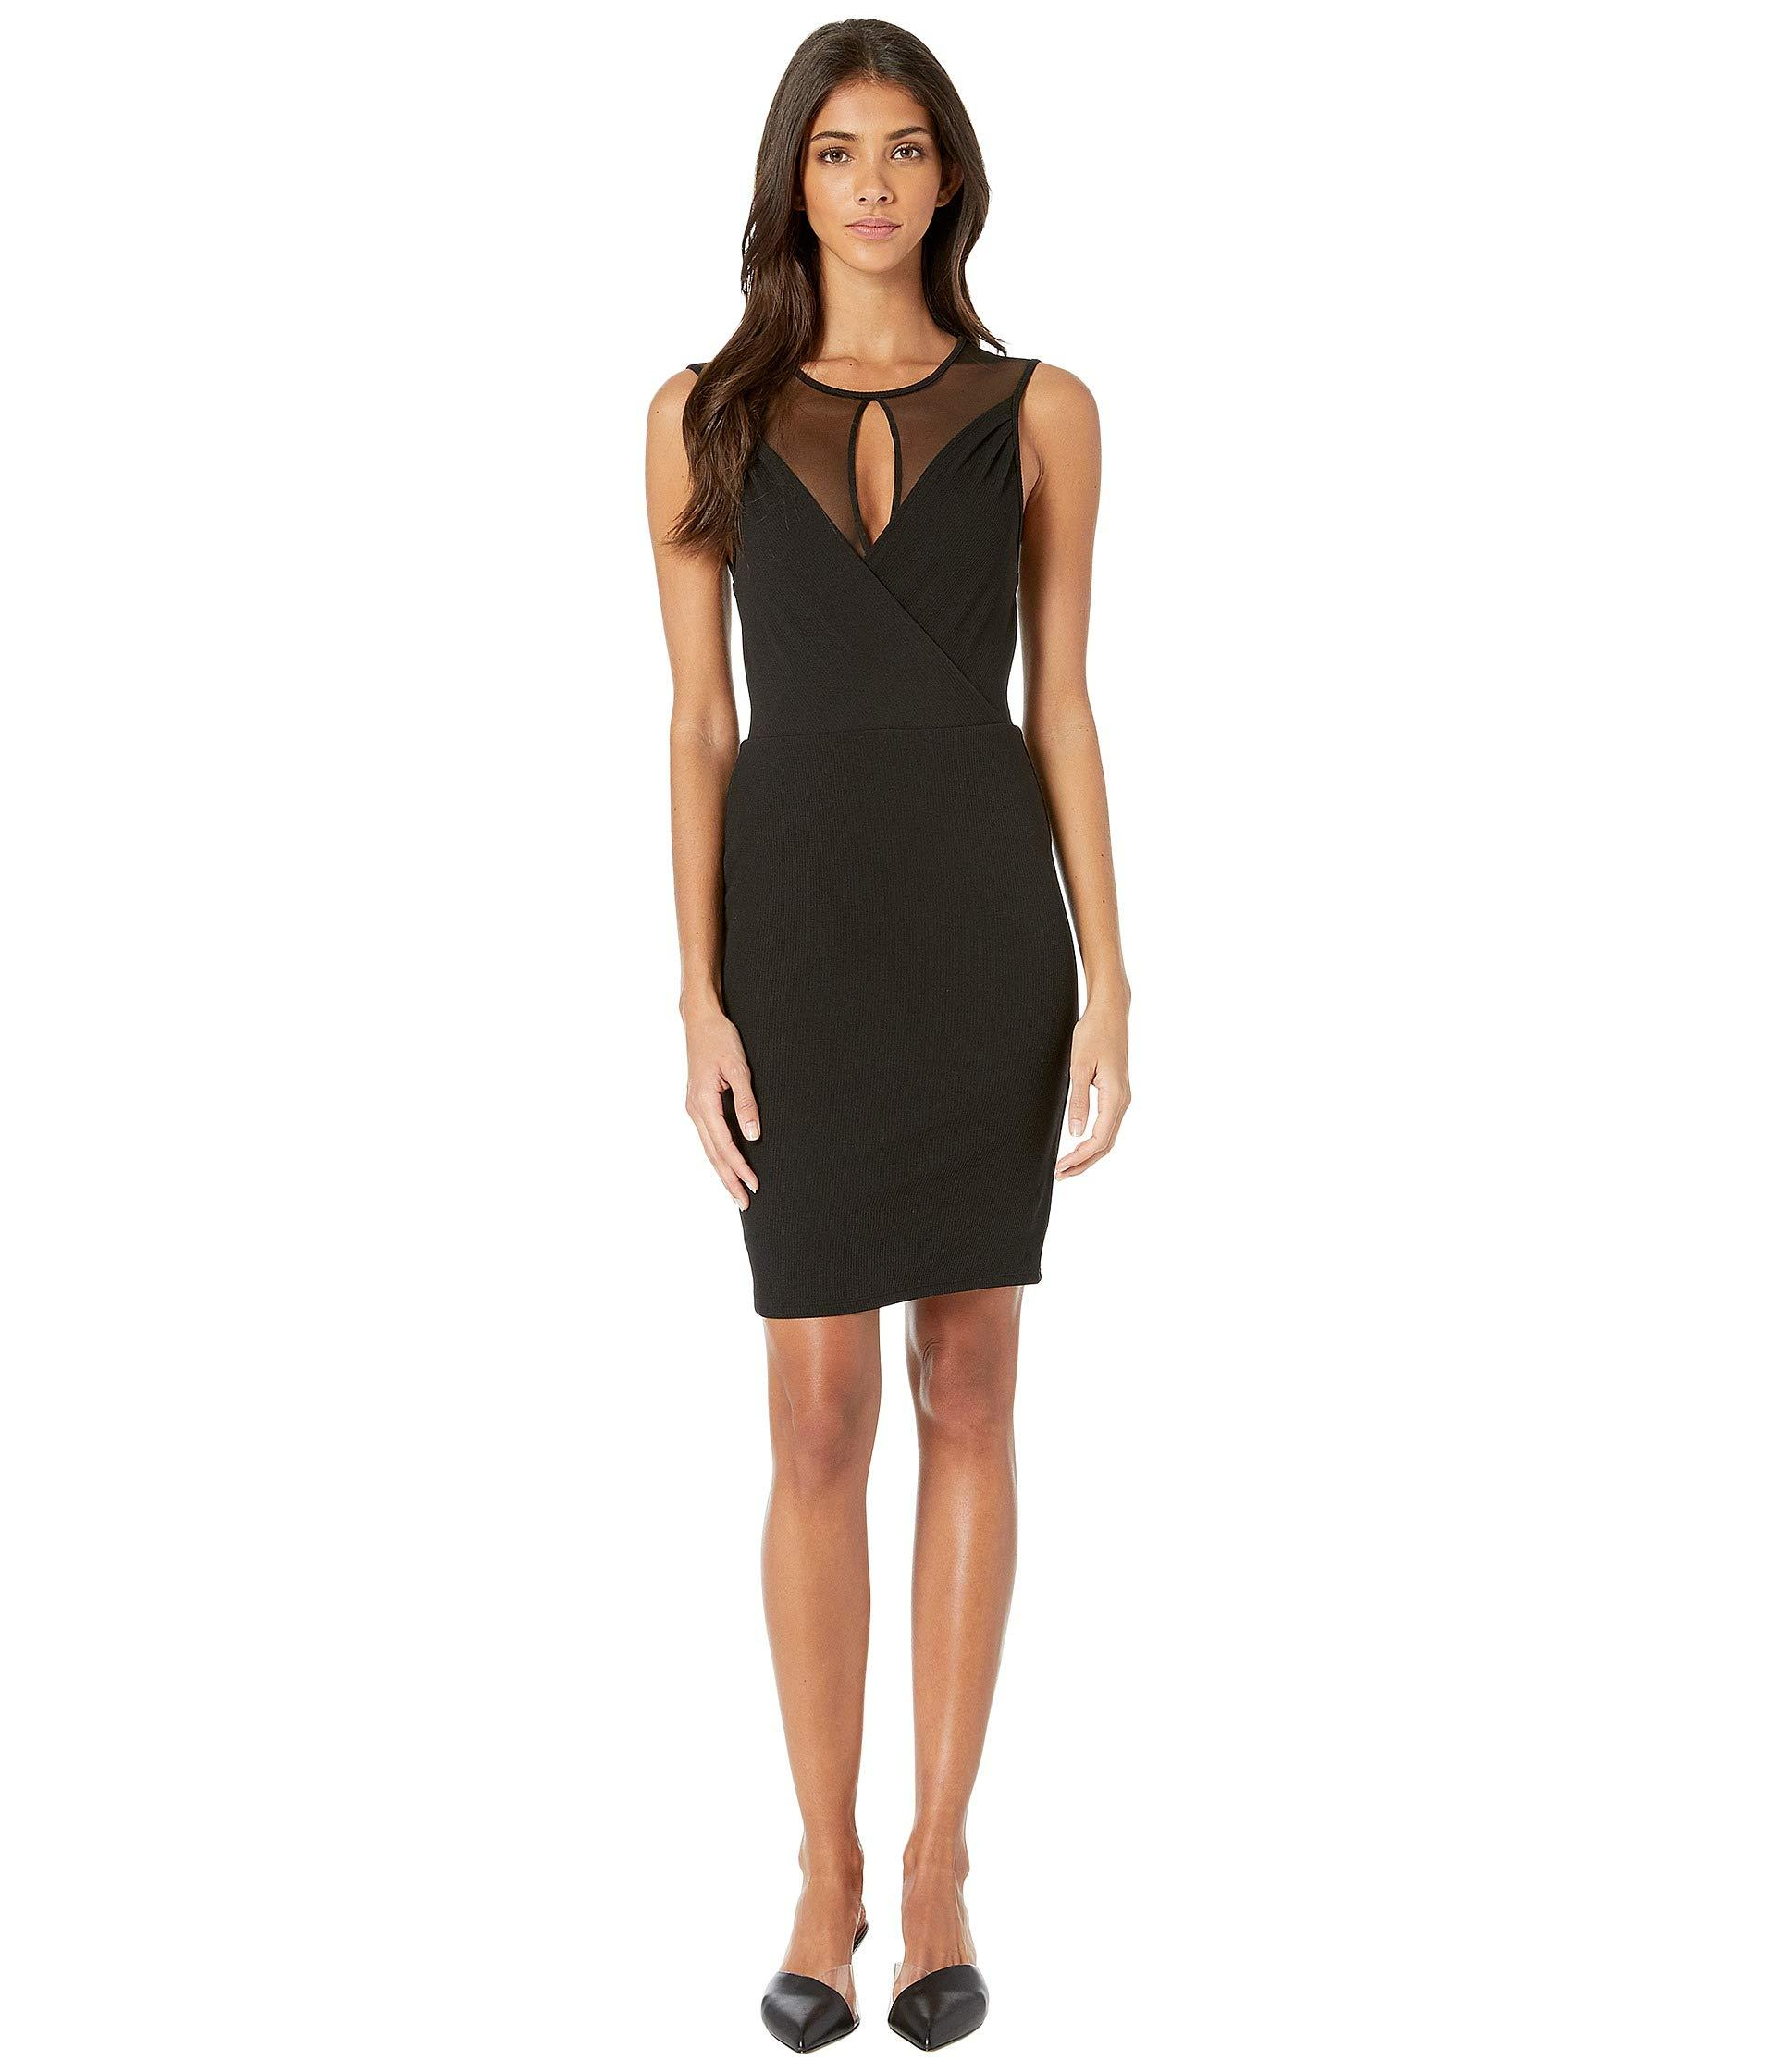 afb39478b63 BCBGeneration Faux Wrap Cut Out Dress (black) Women s Dress in Black ...